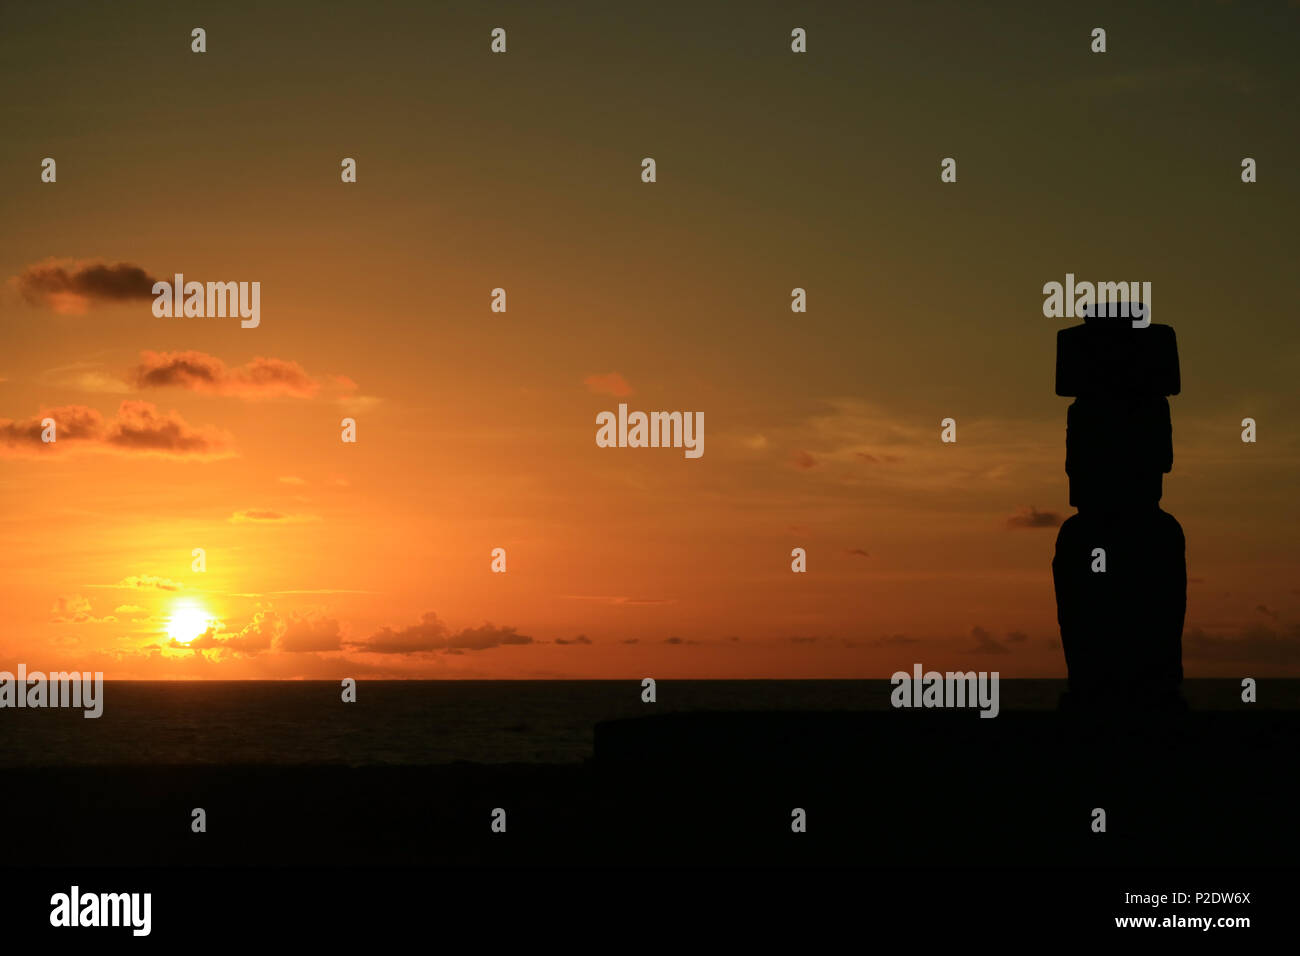 Stunning view of the sun setting over Pacific ocean with Moai's silhouette at Ahu Tahai, Easter Island, Chile - Stock Image